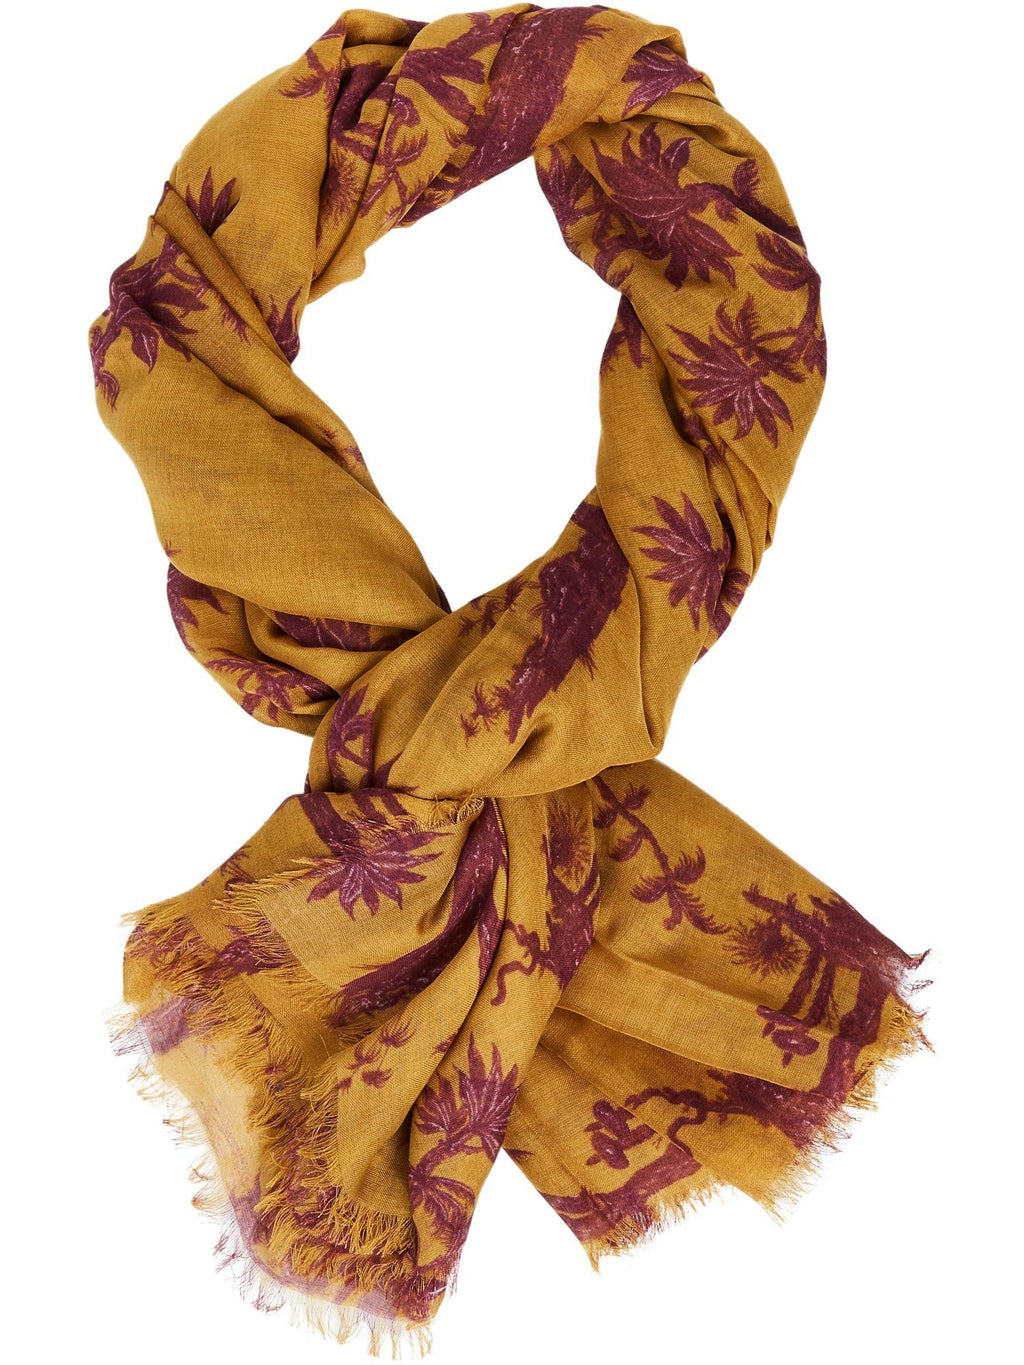 SCOTCH AND SODA - Light Printed Scarf online at PAYA boutique